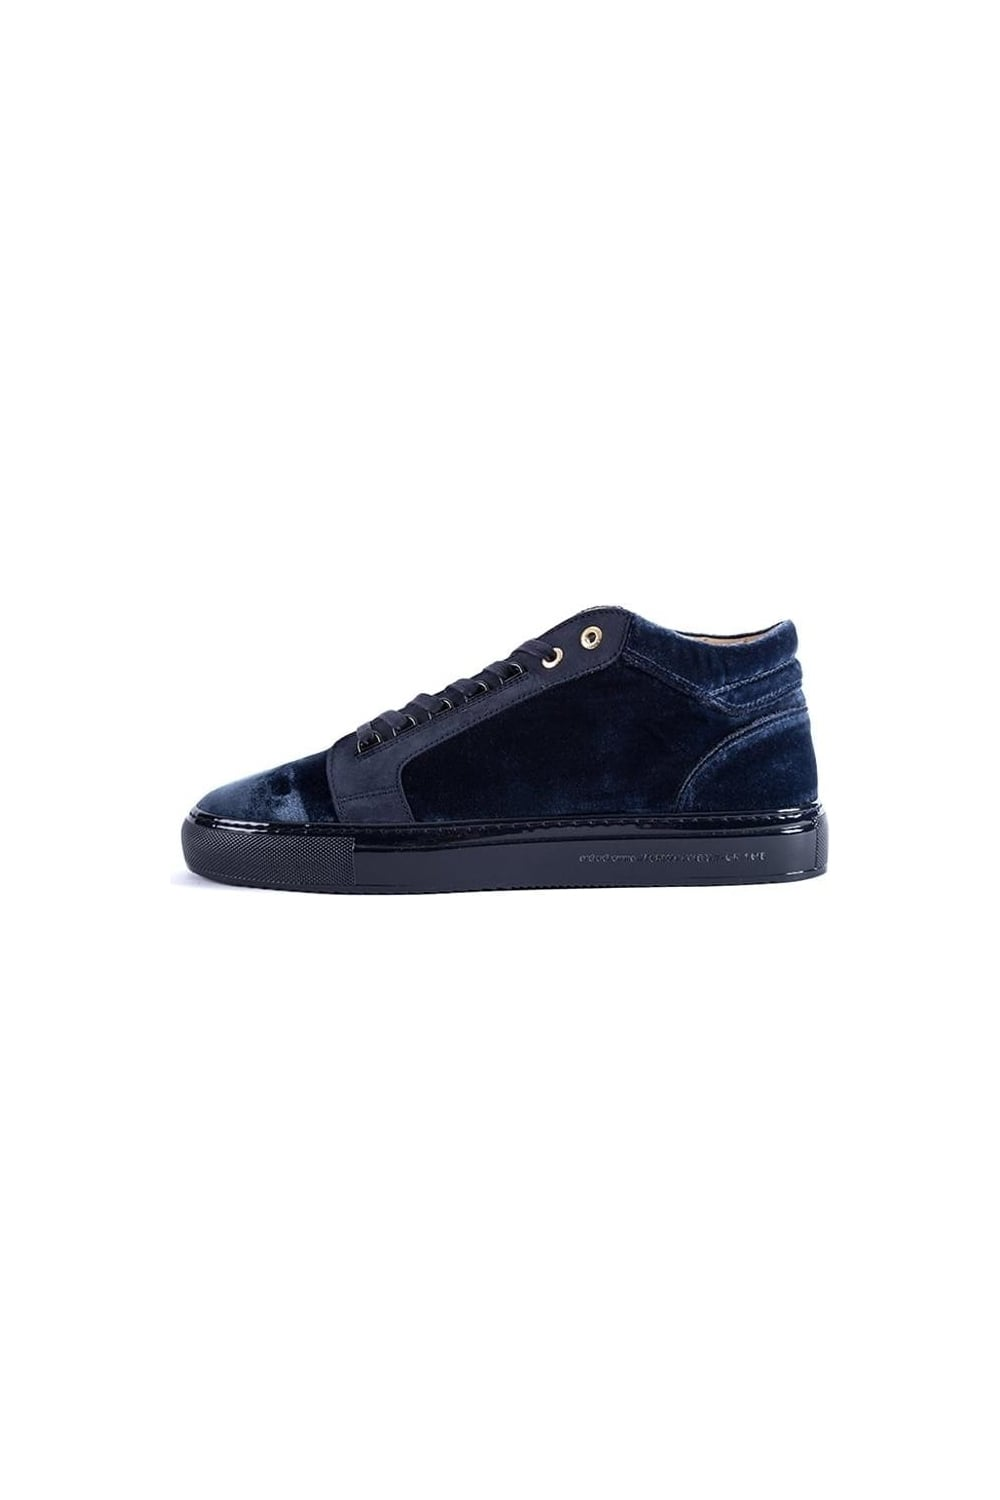 bb64754e7a4 Android Homme Propulsion Mid Velvet Trainers Navy